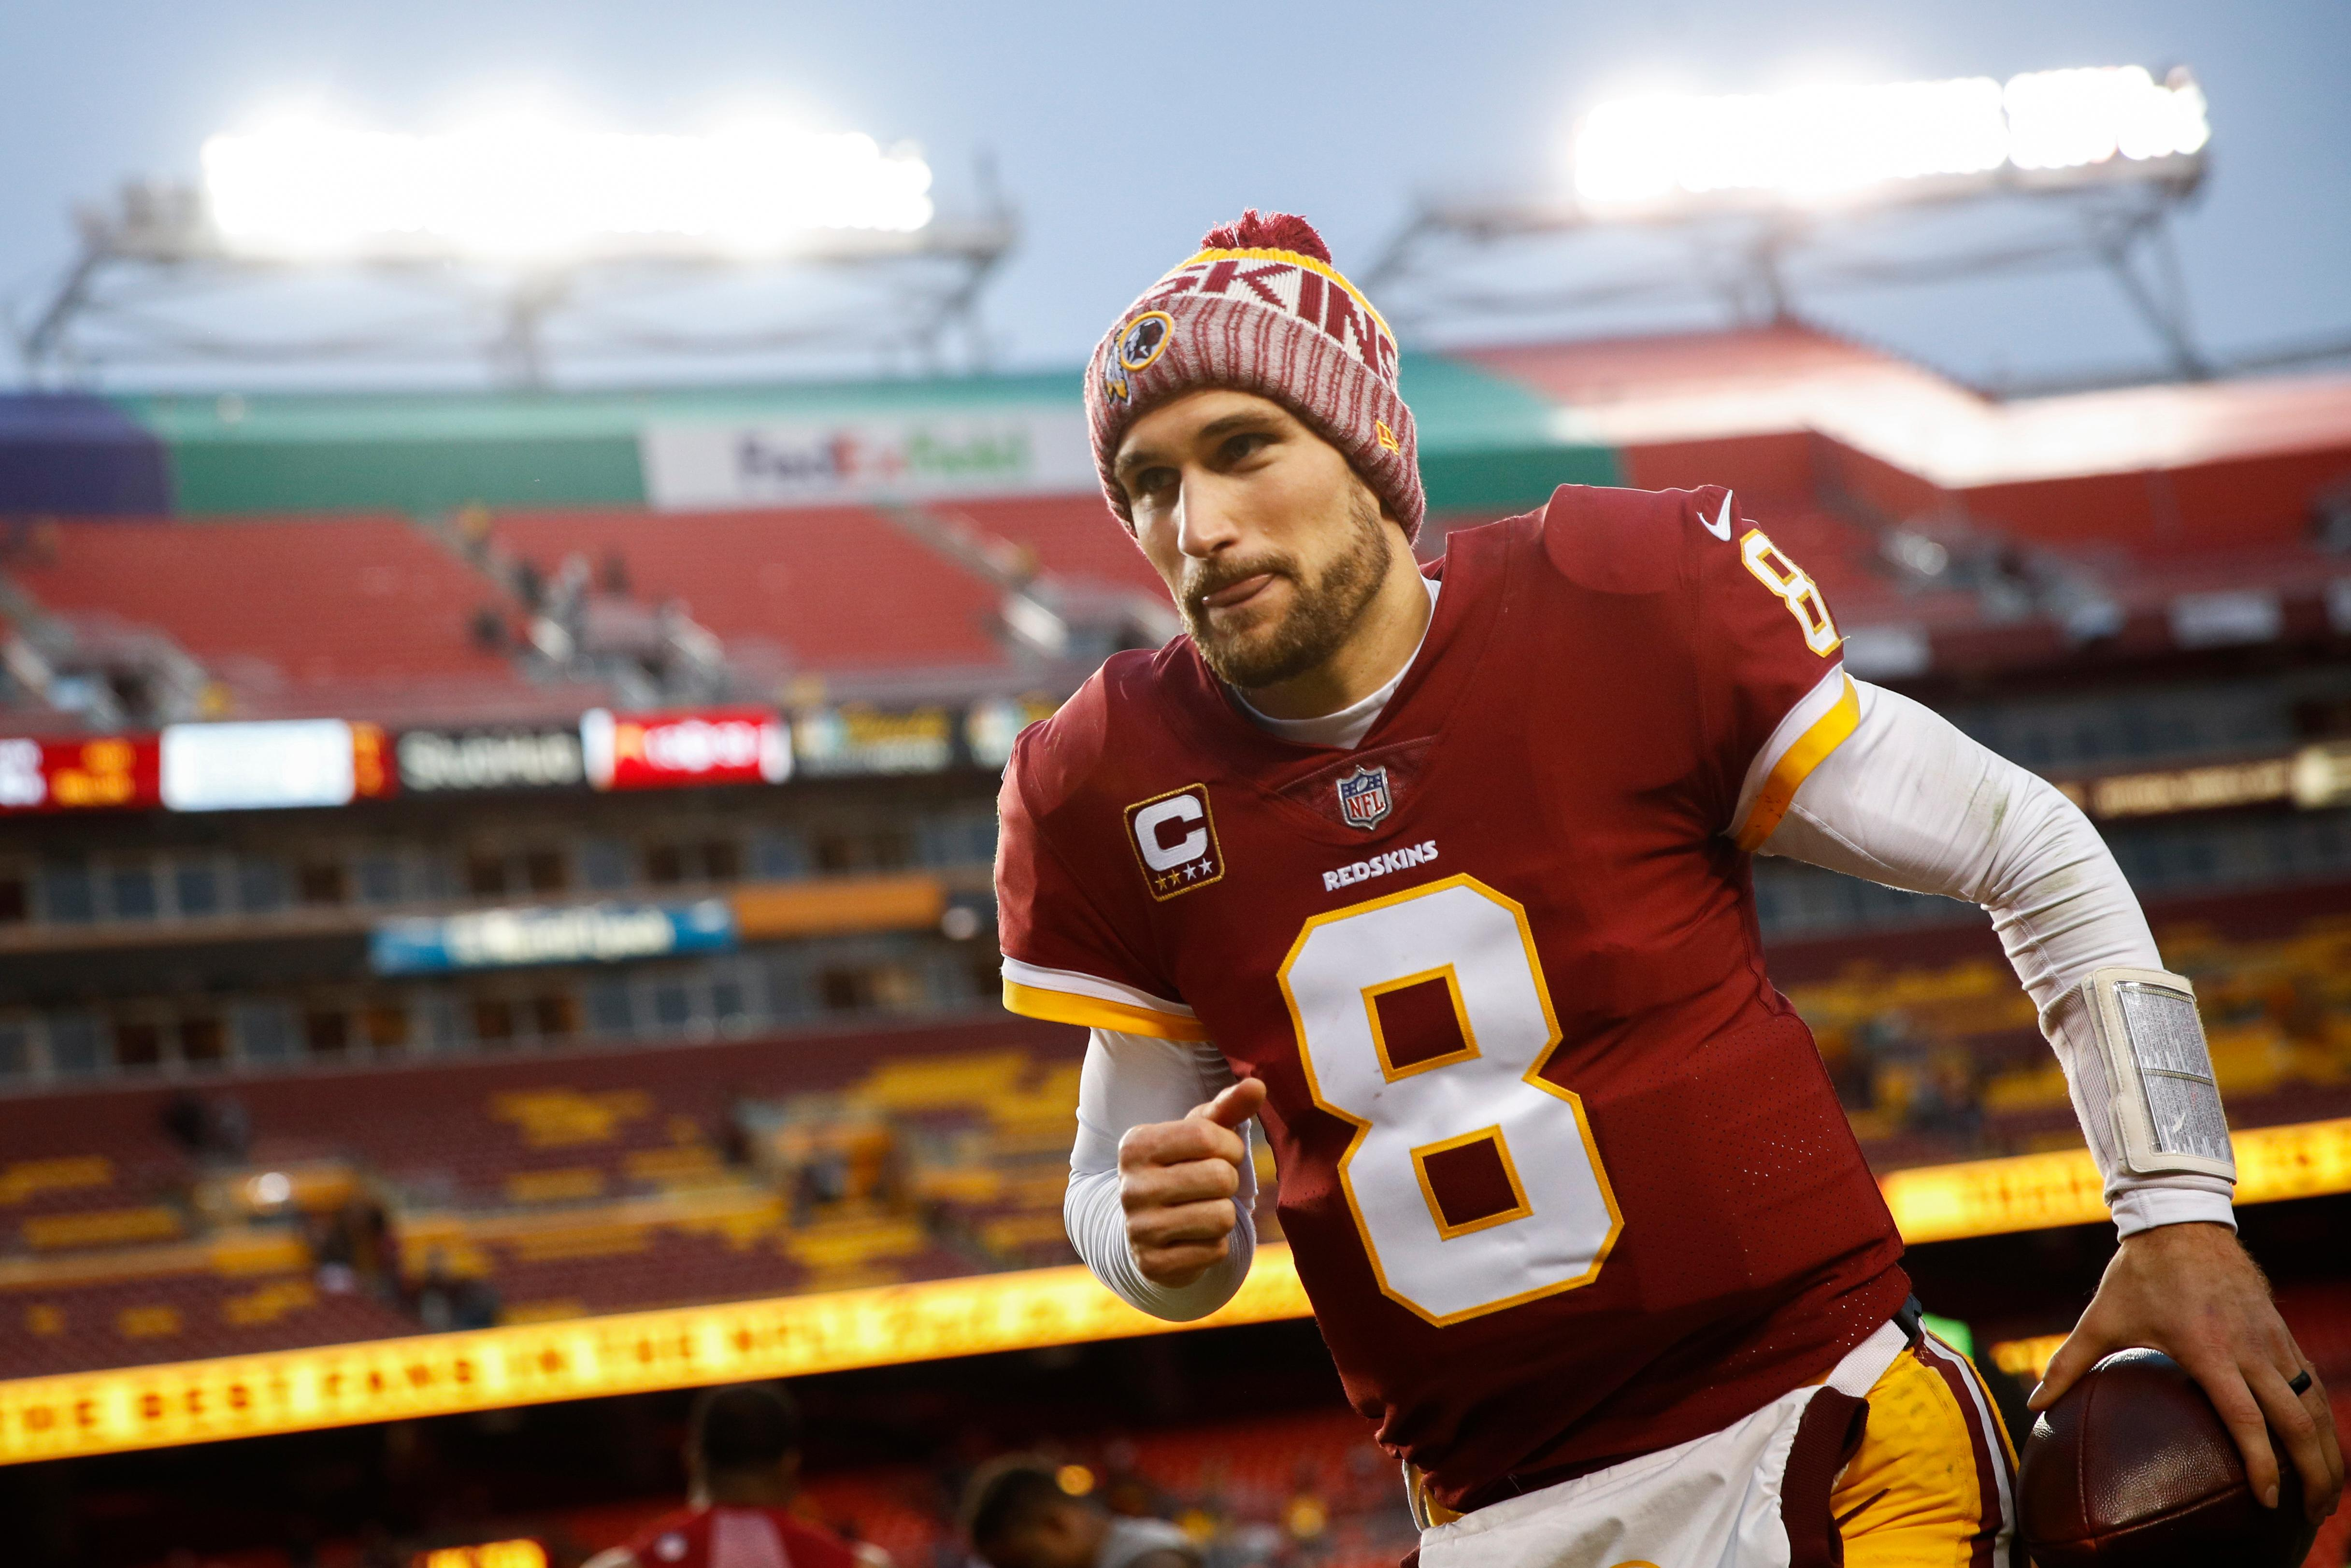 Washington Redskins quarterback Kirk Cousins (8) runs off the field after an NFL football game against Arizona Cardinals in Landover, Md., Sunday, Dec 17, 2017. The Redskins defeated the Cardinals 20-15. (AP Photo/Patrick Semansky)